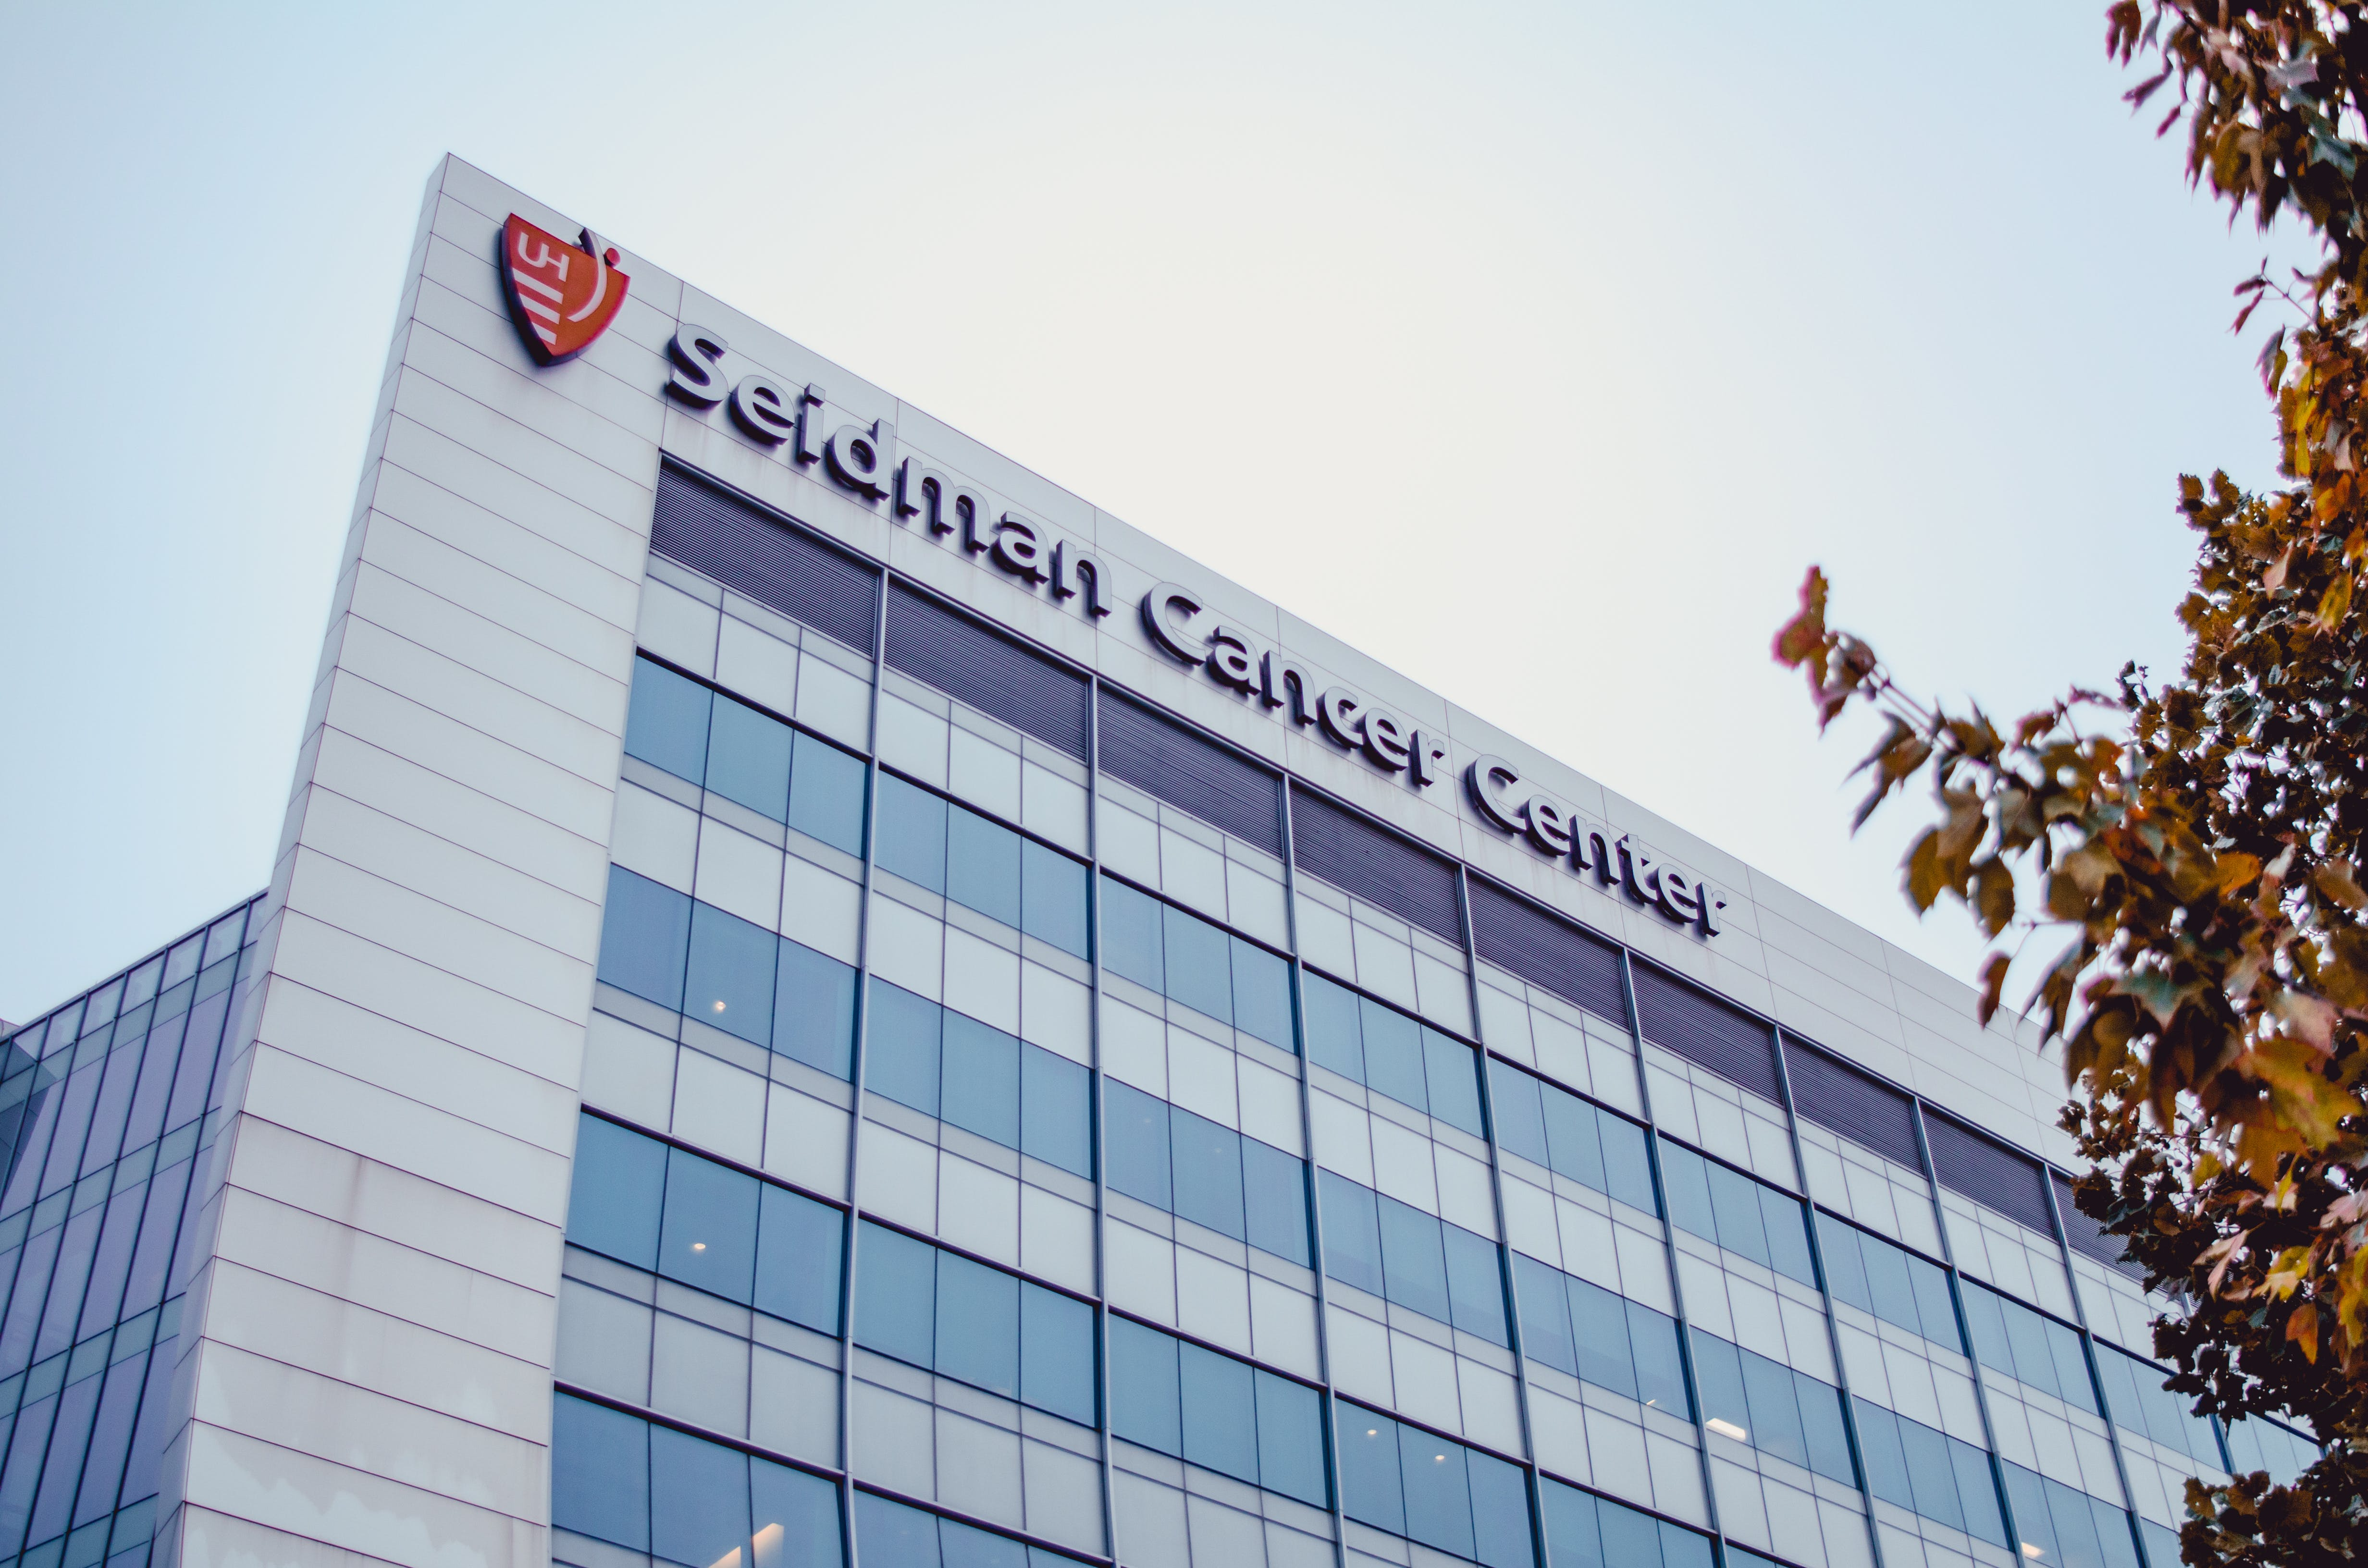 Seidman Cancer Center Building at Daytime